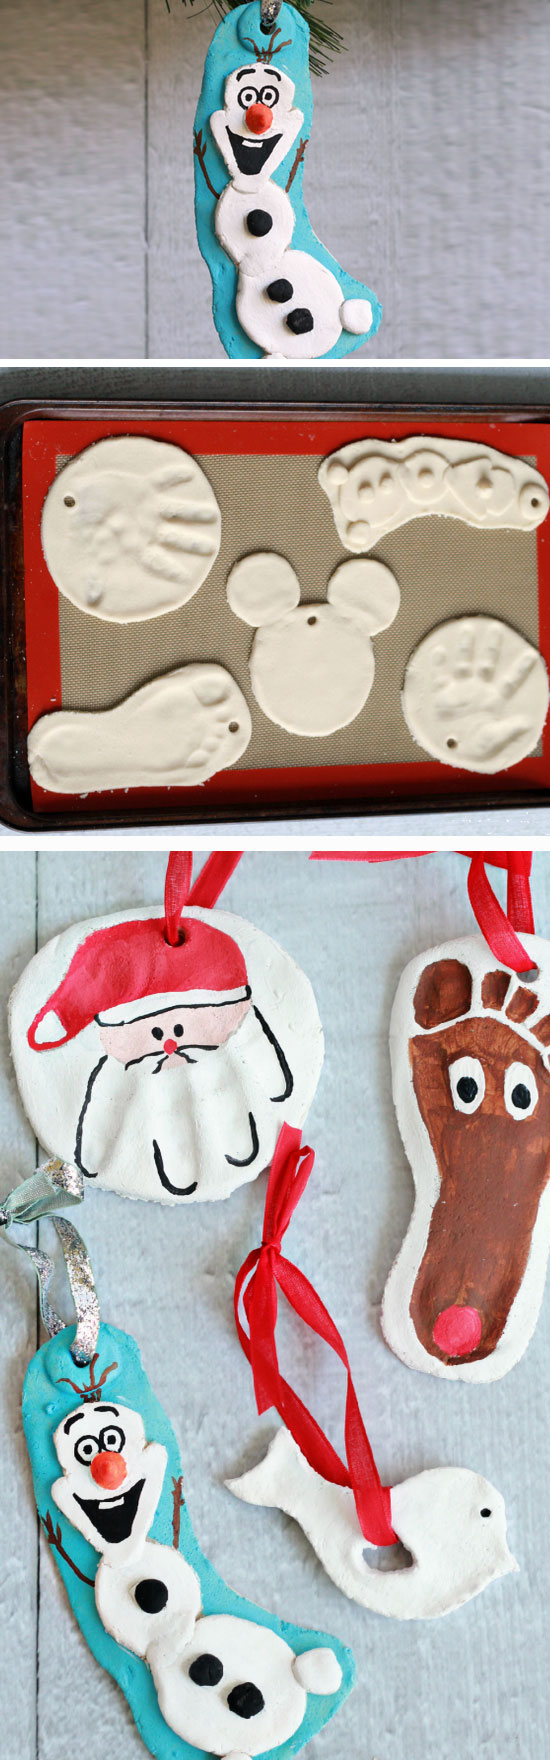 32 Super Easy DIY Christmas Crafts That Kids Can Make